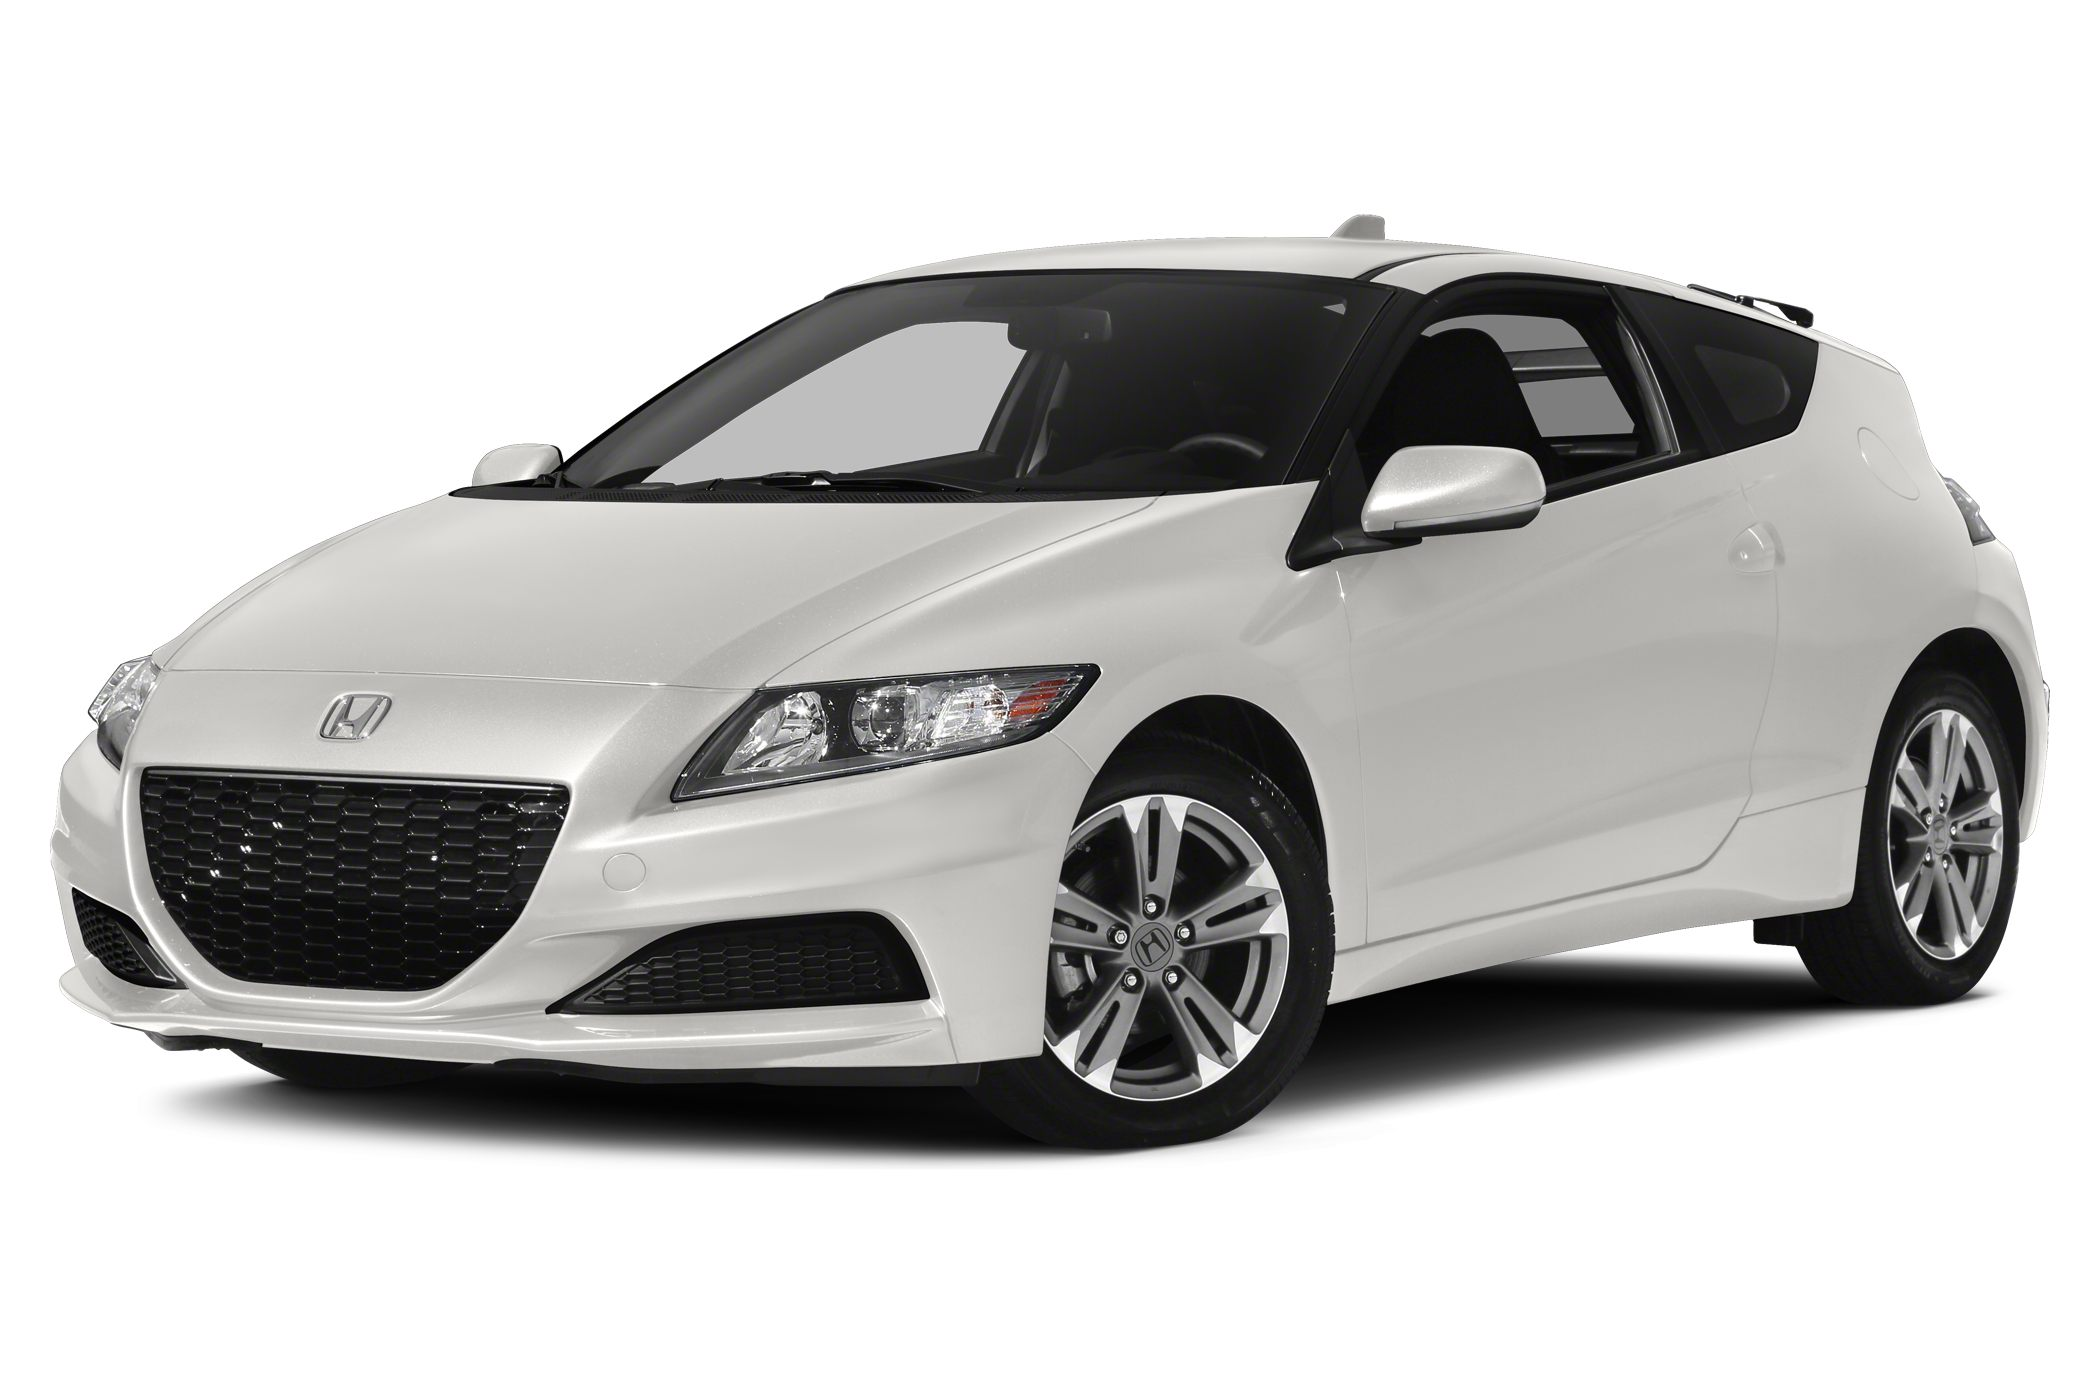 2015 Honda CR-Z Base Coupe for sale in Raleigh for $21,585 with 11 miles.